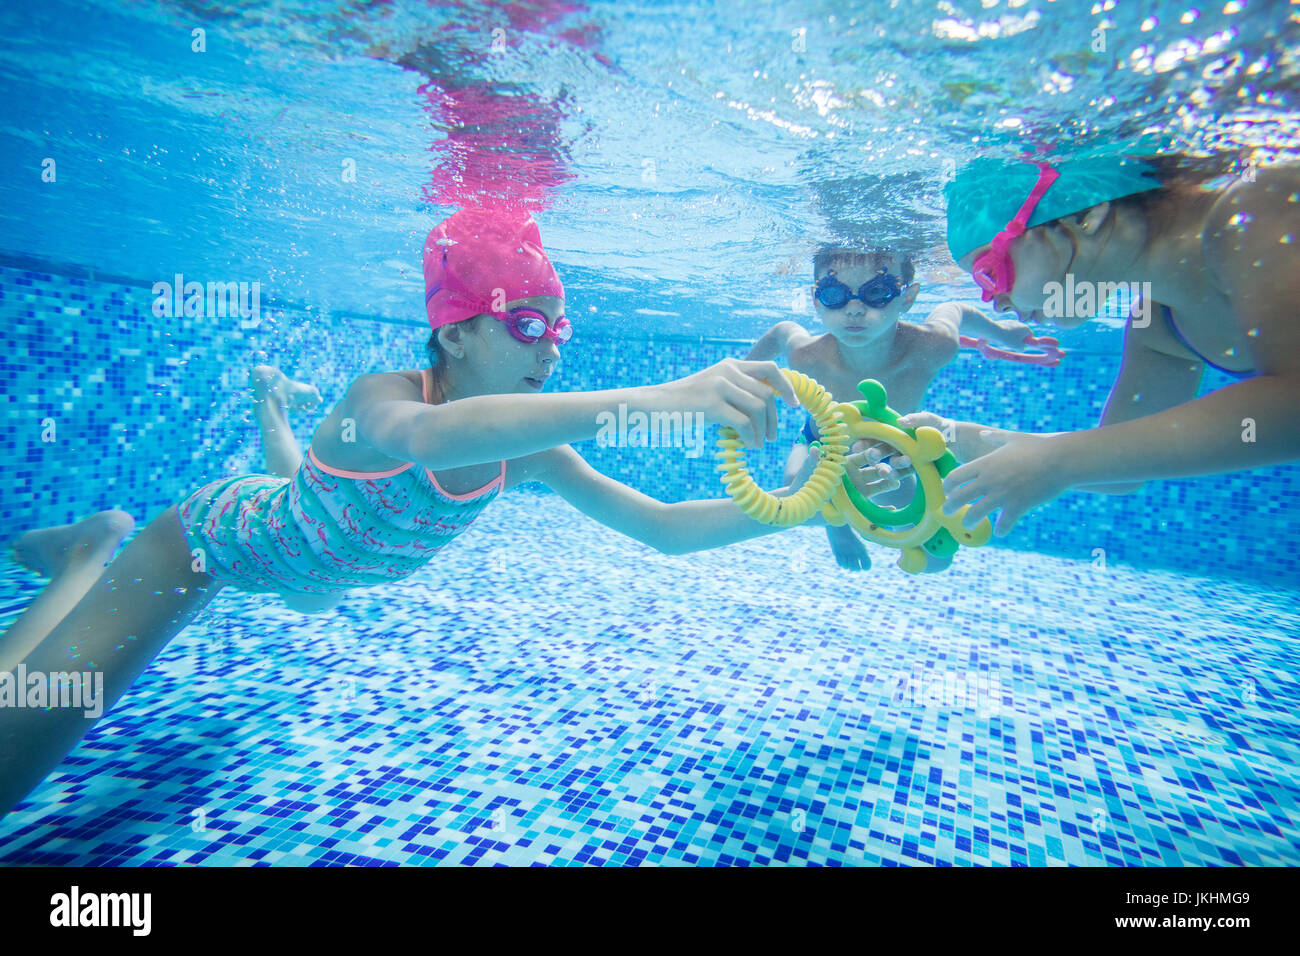 kids swimming underwater and playing with toys in swimming pool - Kids Swimming Underwater